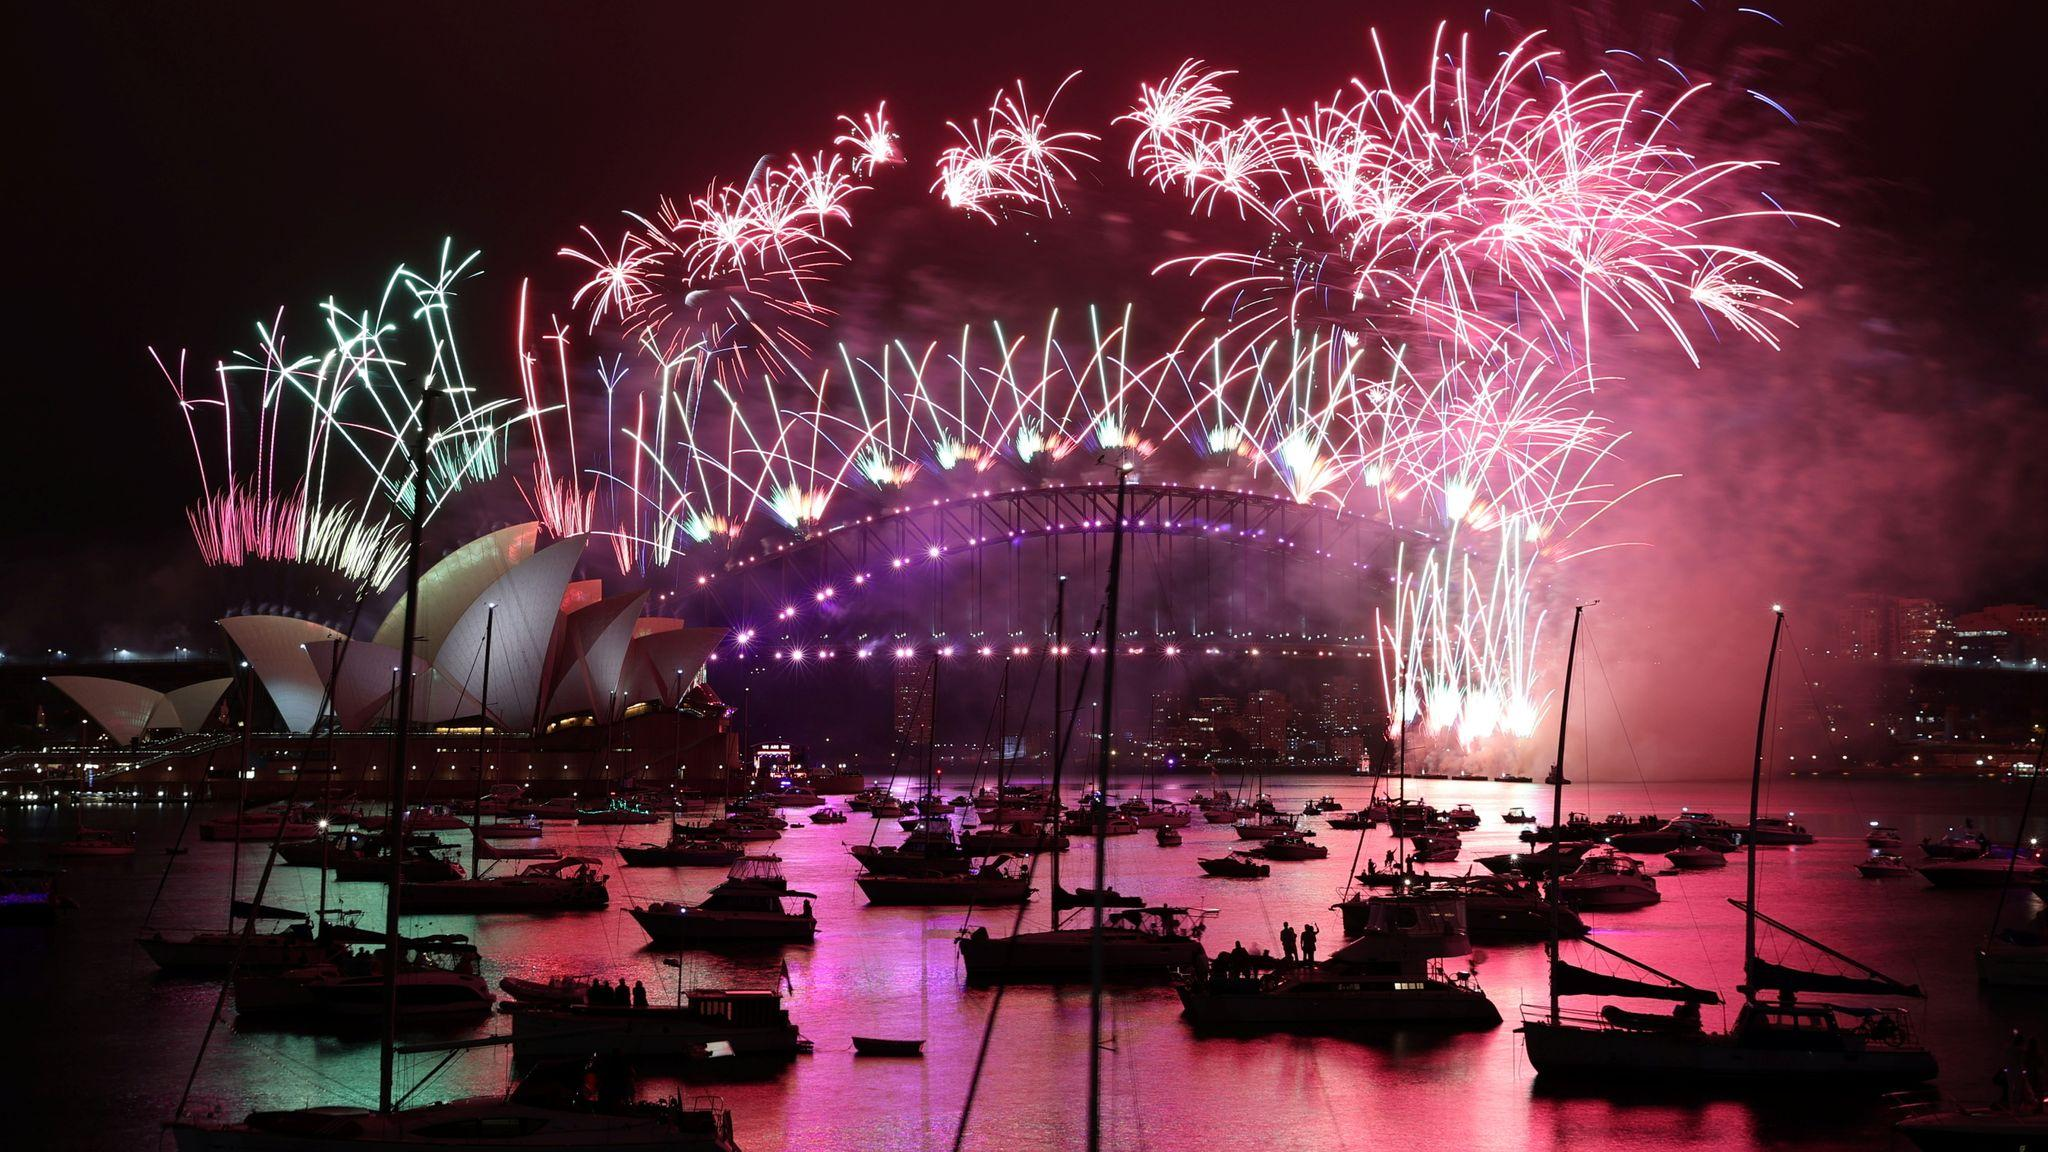 The world welcomes the new year 2021